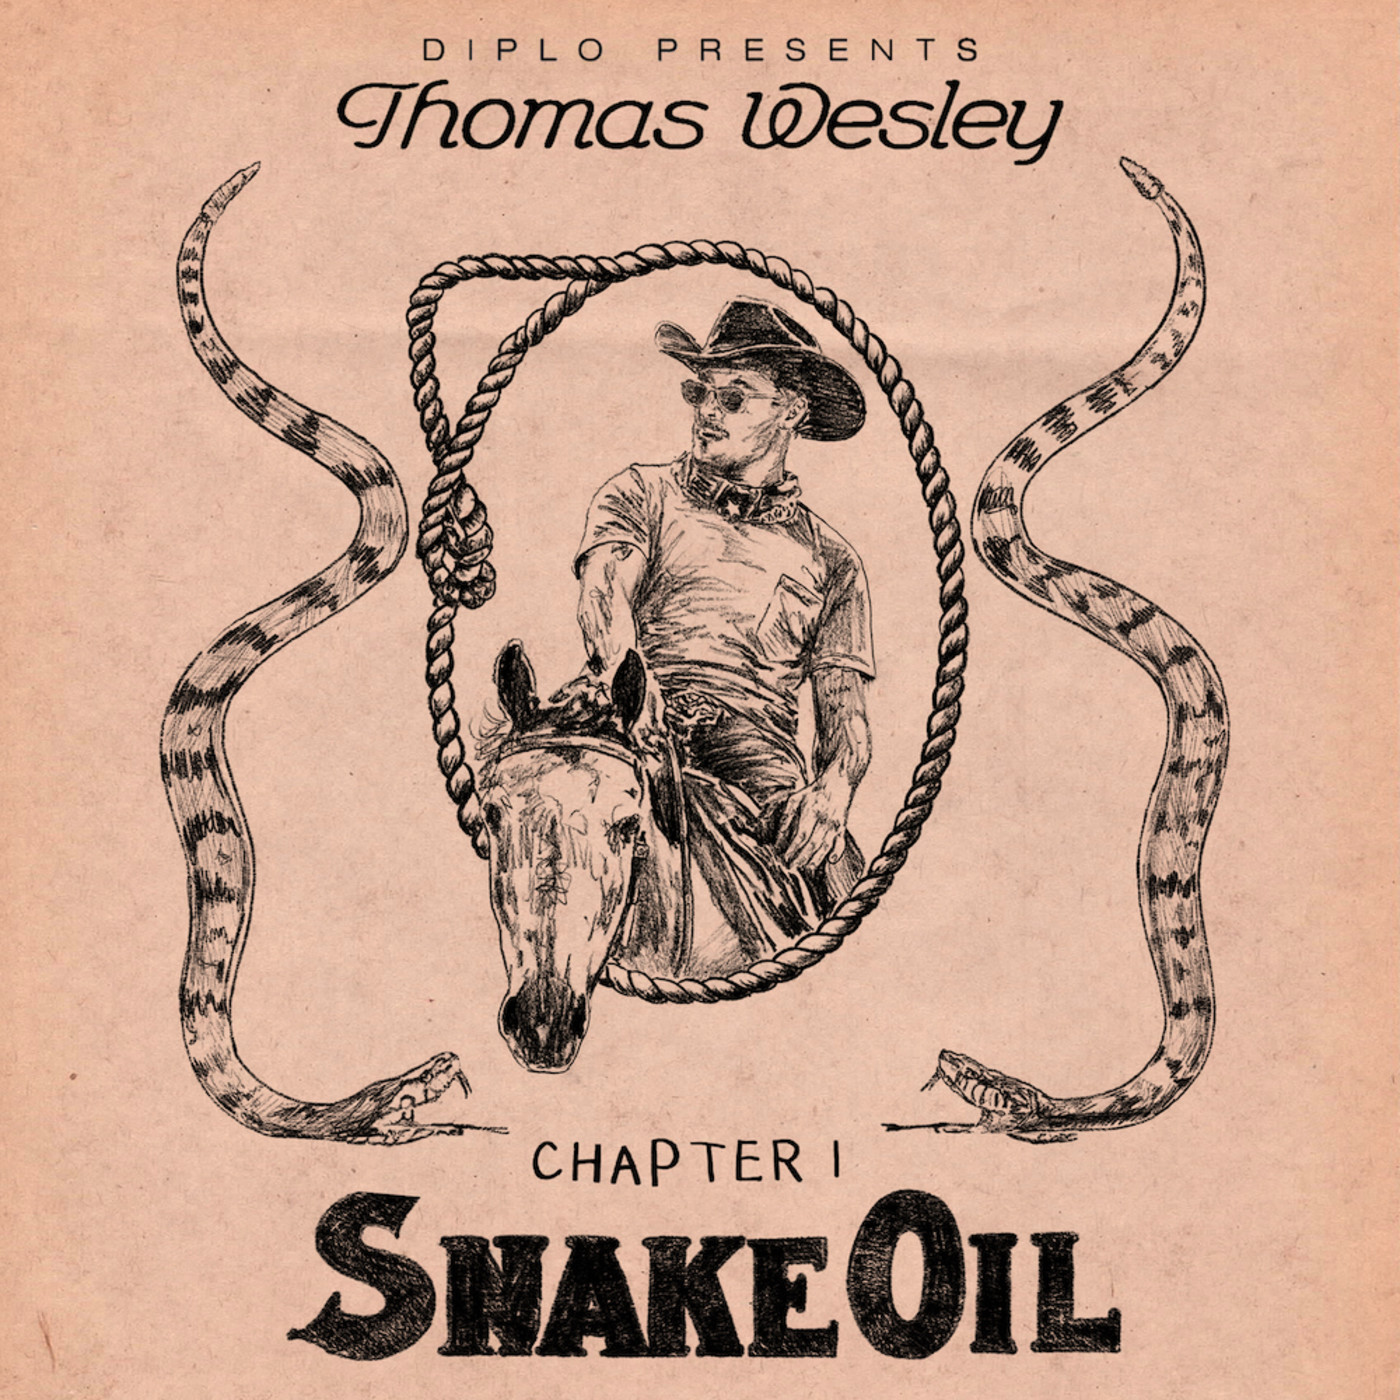 "https://www.youredm.com/ ""srcset ="" https://www.youredm.com/wp-content/uploads/2020/05/diplo-present-thomas-wesley-chapter-1-snake-oil- stream.jpg 1400w, https://www.youredm.com/wp-content/uploads/2020/05/diplo-present-thomas-wesley-chapter-1-snake-oil-stream-1024x1024.jpg 1024w, https: //www.youredm.com/wp-content/uploads/2020/05/diplo-present-thomas-wesley-chapter-1-snake-oil-stream-150x150.jpg 150w, https://www.youredm.com /wp-content/uploads/2020/05/diplo-present-thomas-wesley-chapter-1-snake-oil-stream-768x768.jpg 768w, https://www.youredm.com/wp-content/uploads/ 2020/05 / diplo-presents-thomas-wesley-chapter-1-snake-oil-stream-125x125.jpg 125w ""tailles ="" (largeur max: 1400px) 100vw, 1400px ""/></div> </div> <section class="